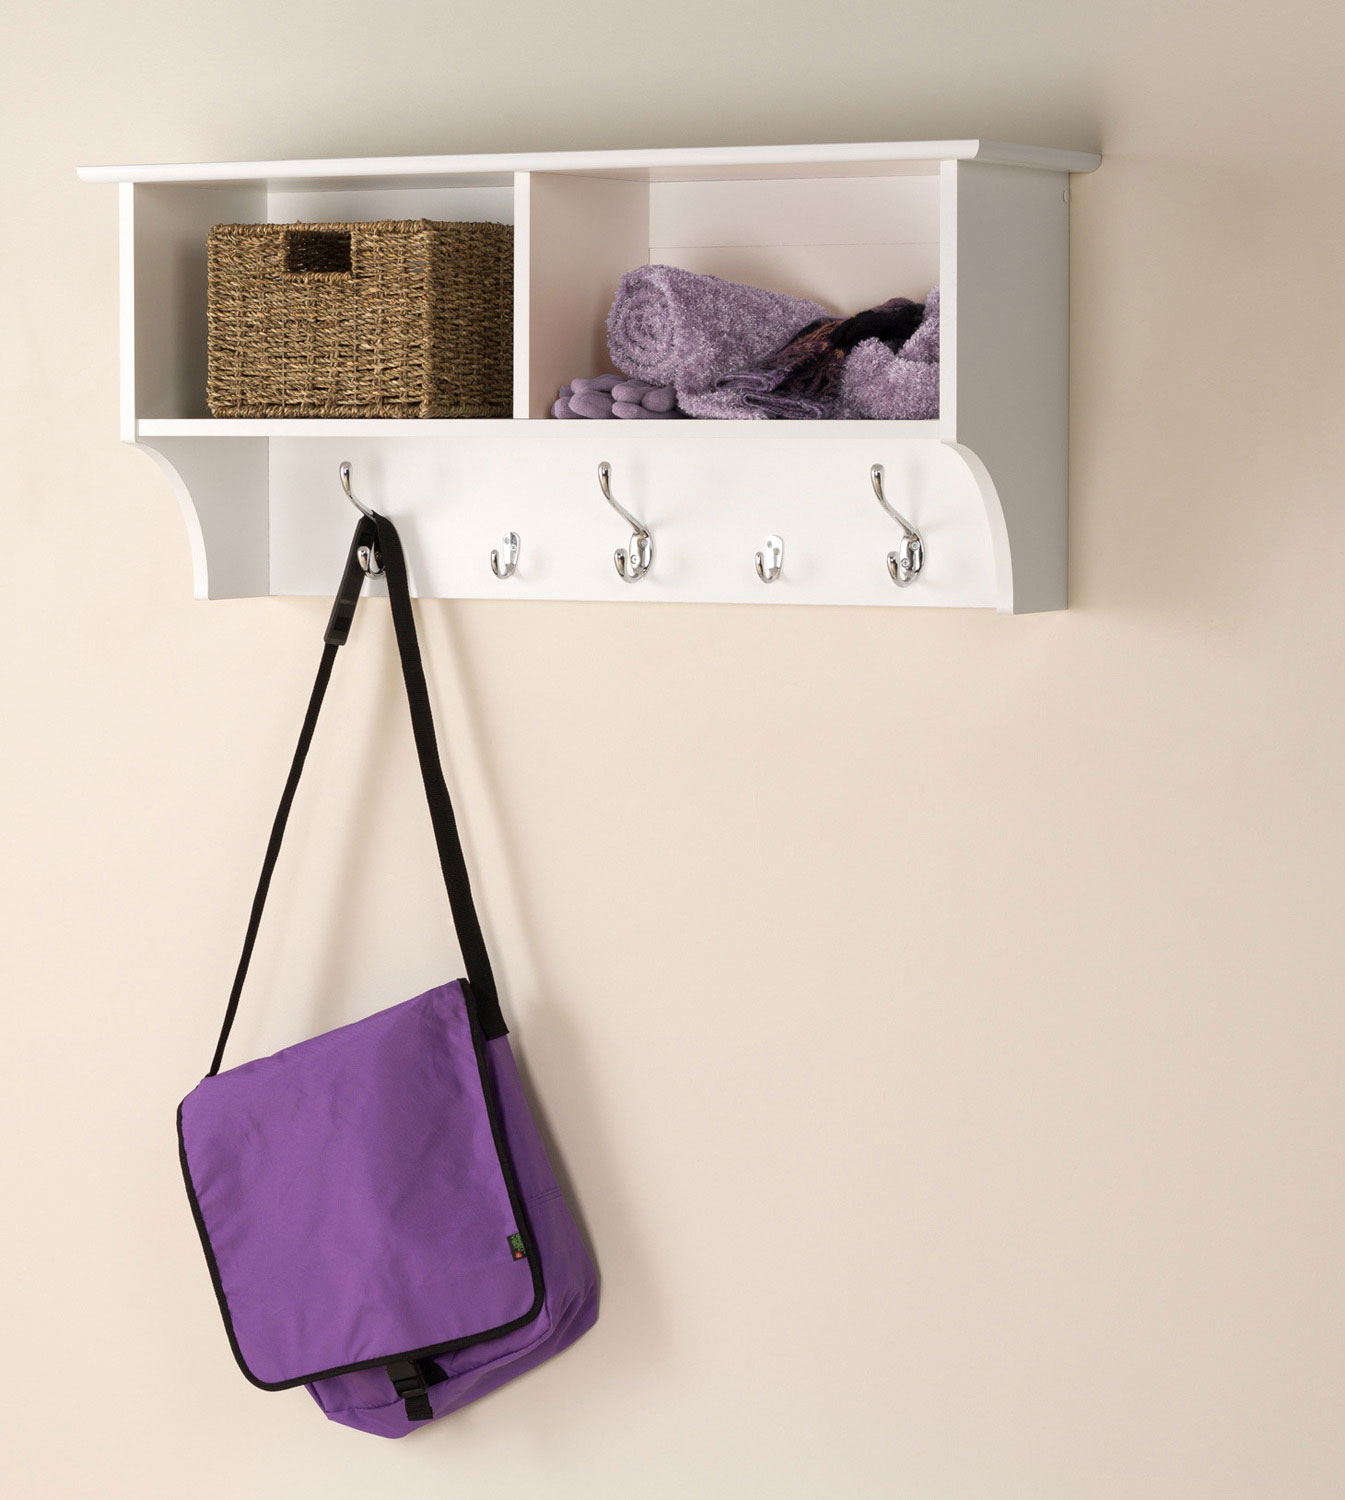 Prepac 36 Inch Wide Hanging Entryway Shelf - White